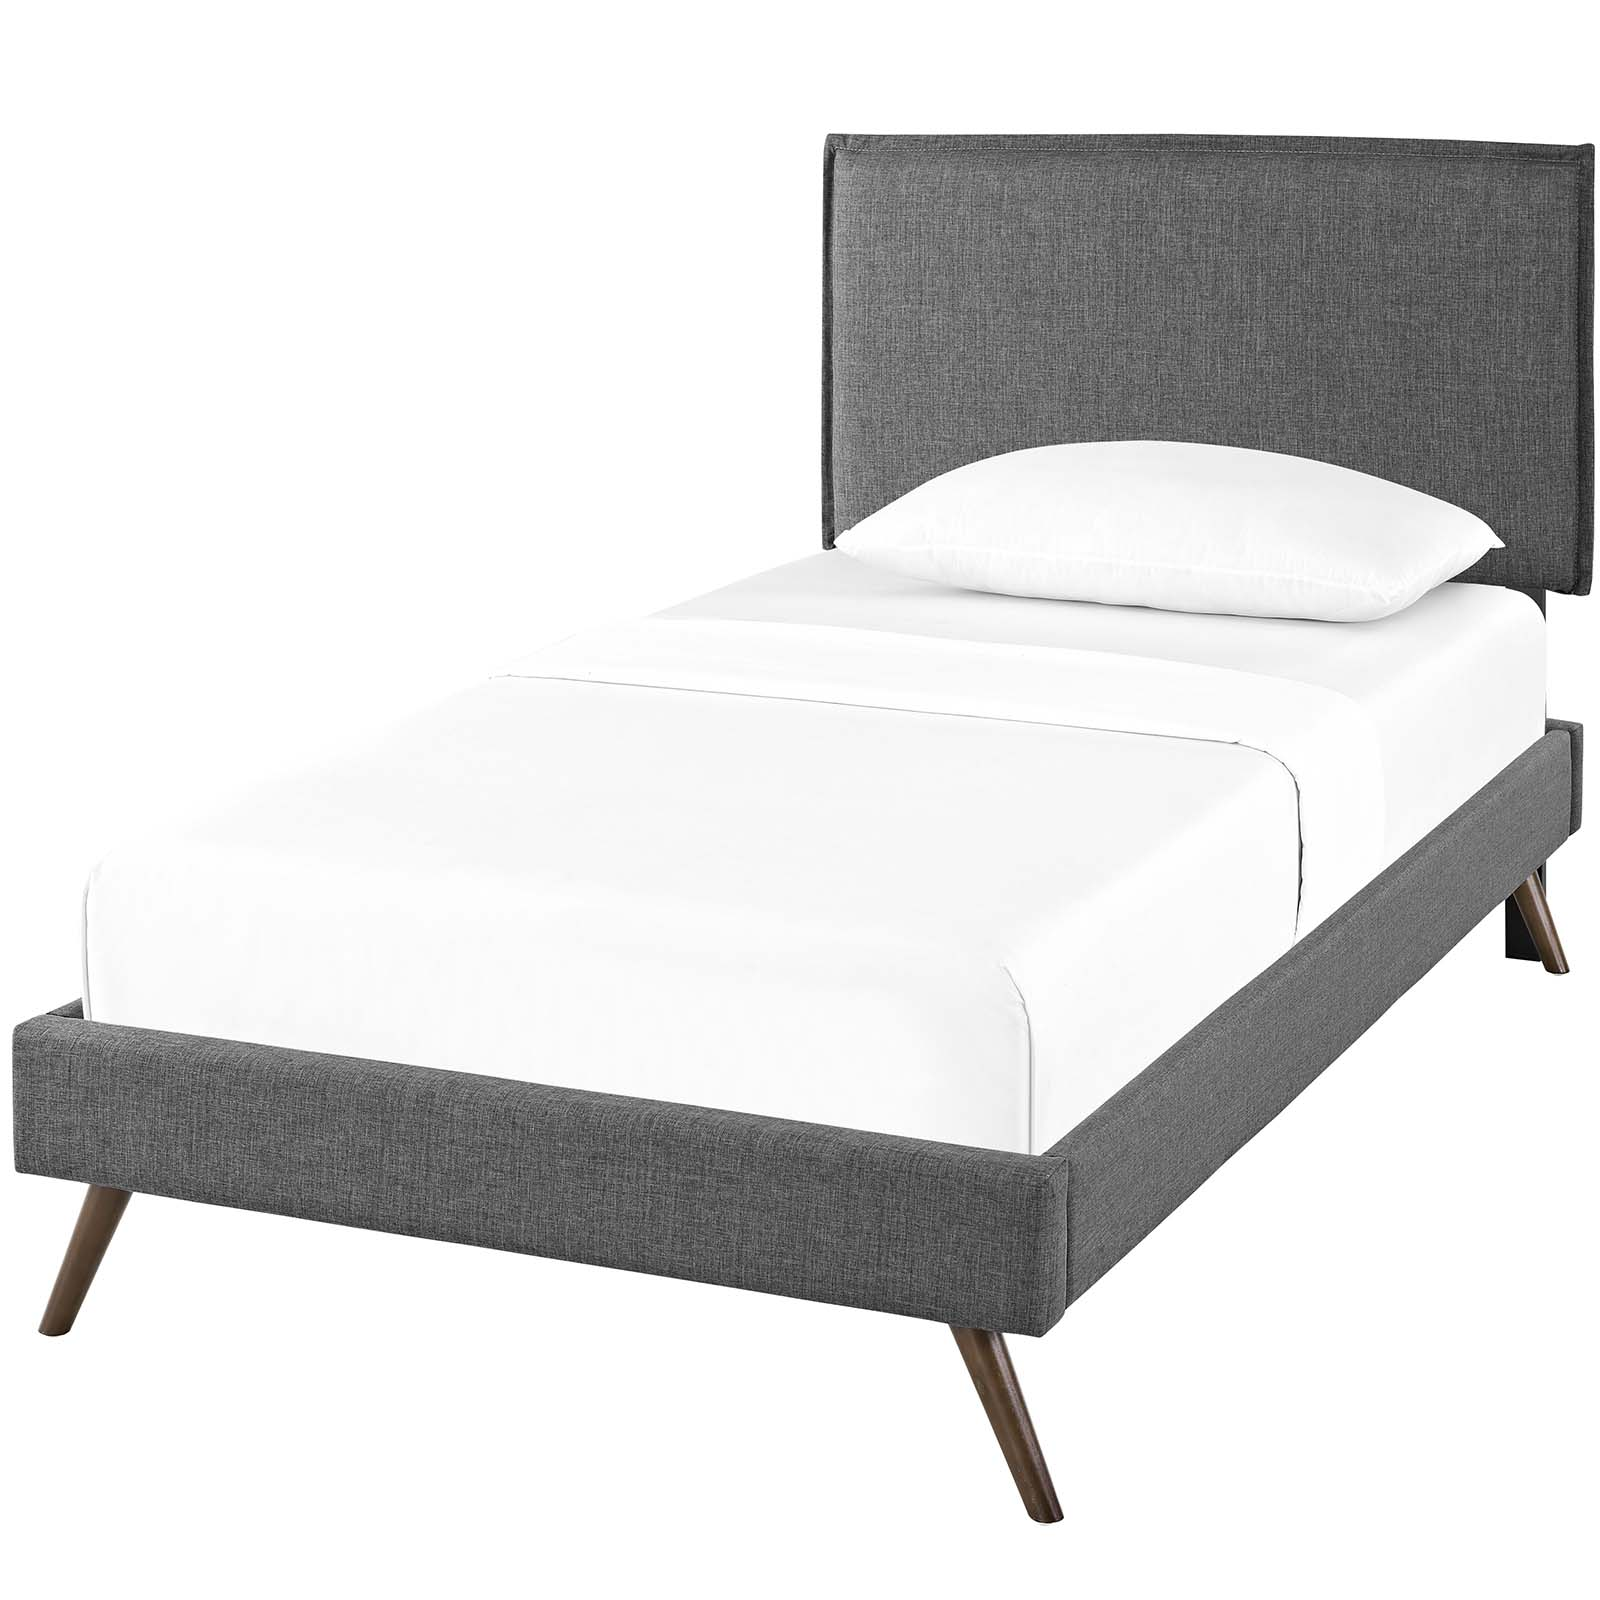 Modern Contemporary Urban Design Bedroom Twin Size Platform Bed Frame, Fabric, Grey Gray